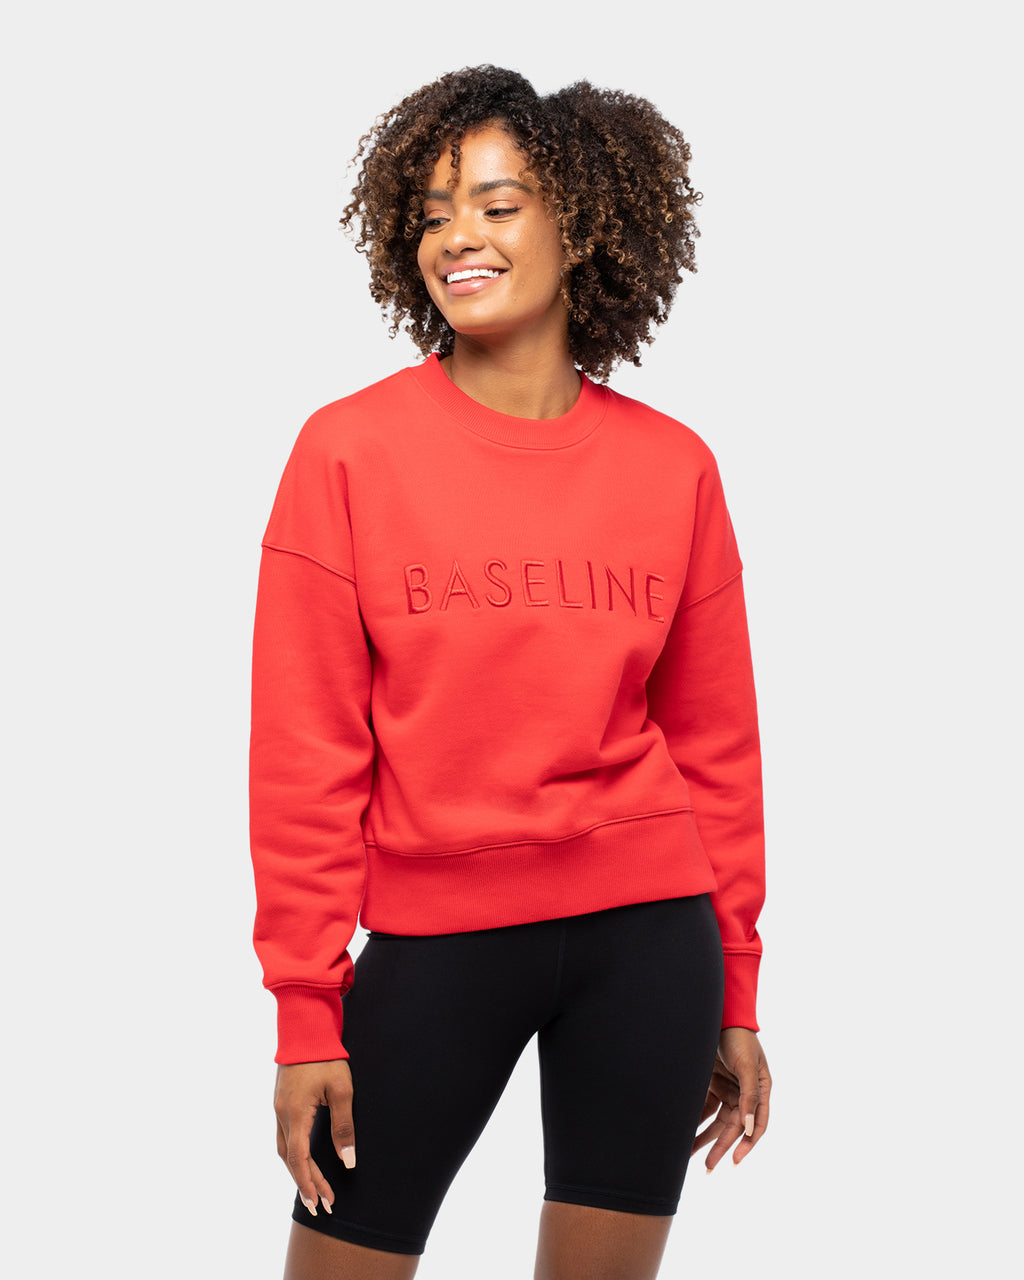 Ashy Bines Baseline Stand Out Sweater Red